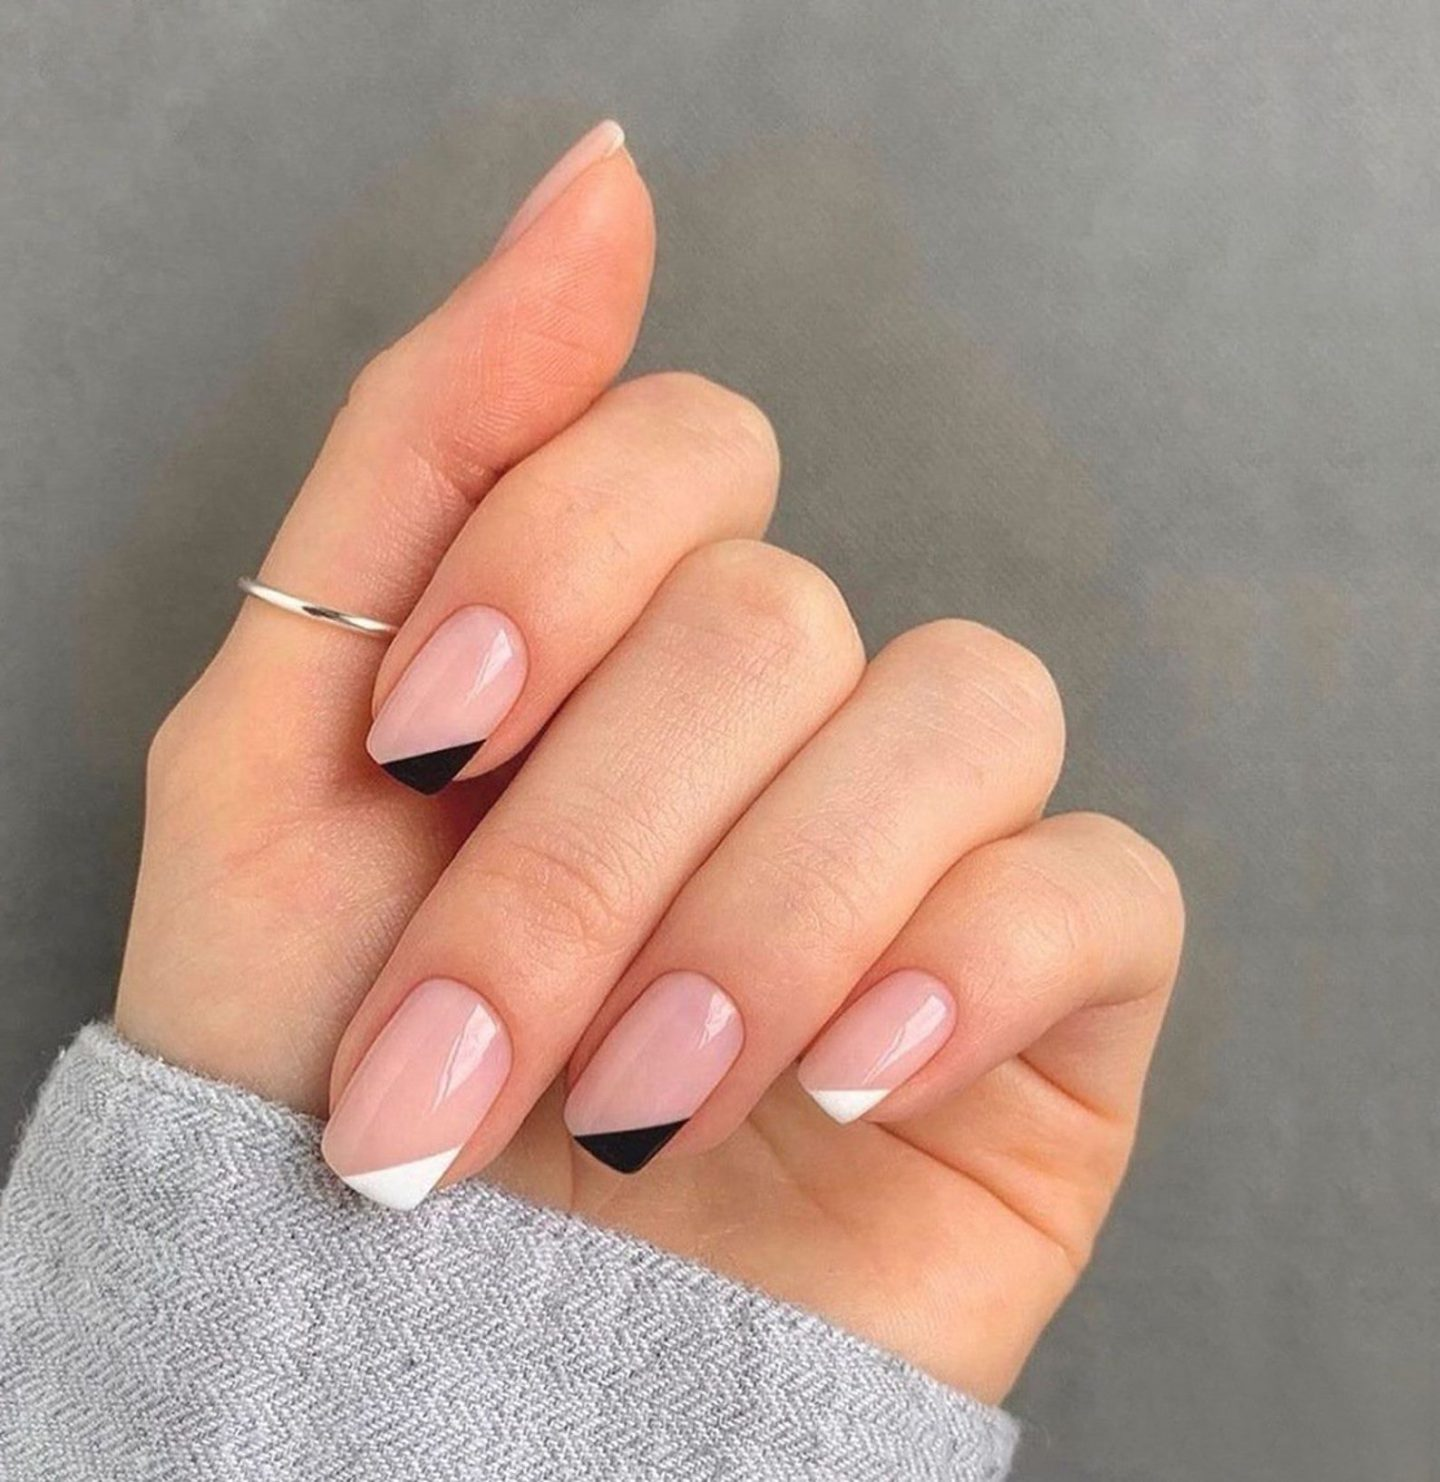 Short simple and minimalistic black and white nails